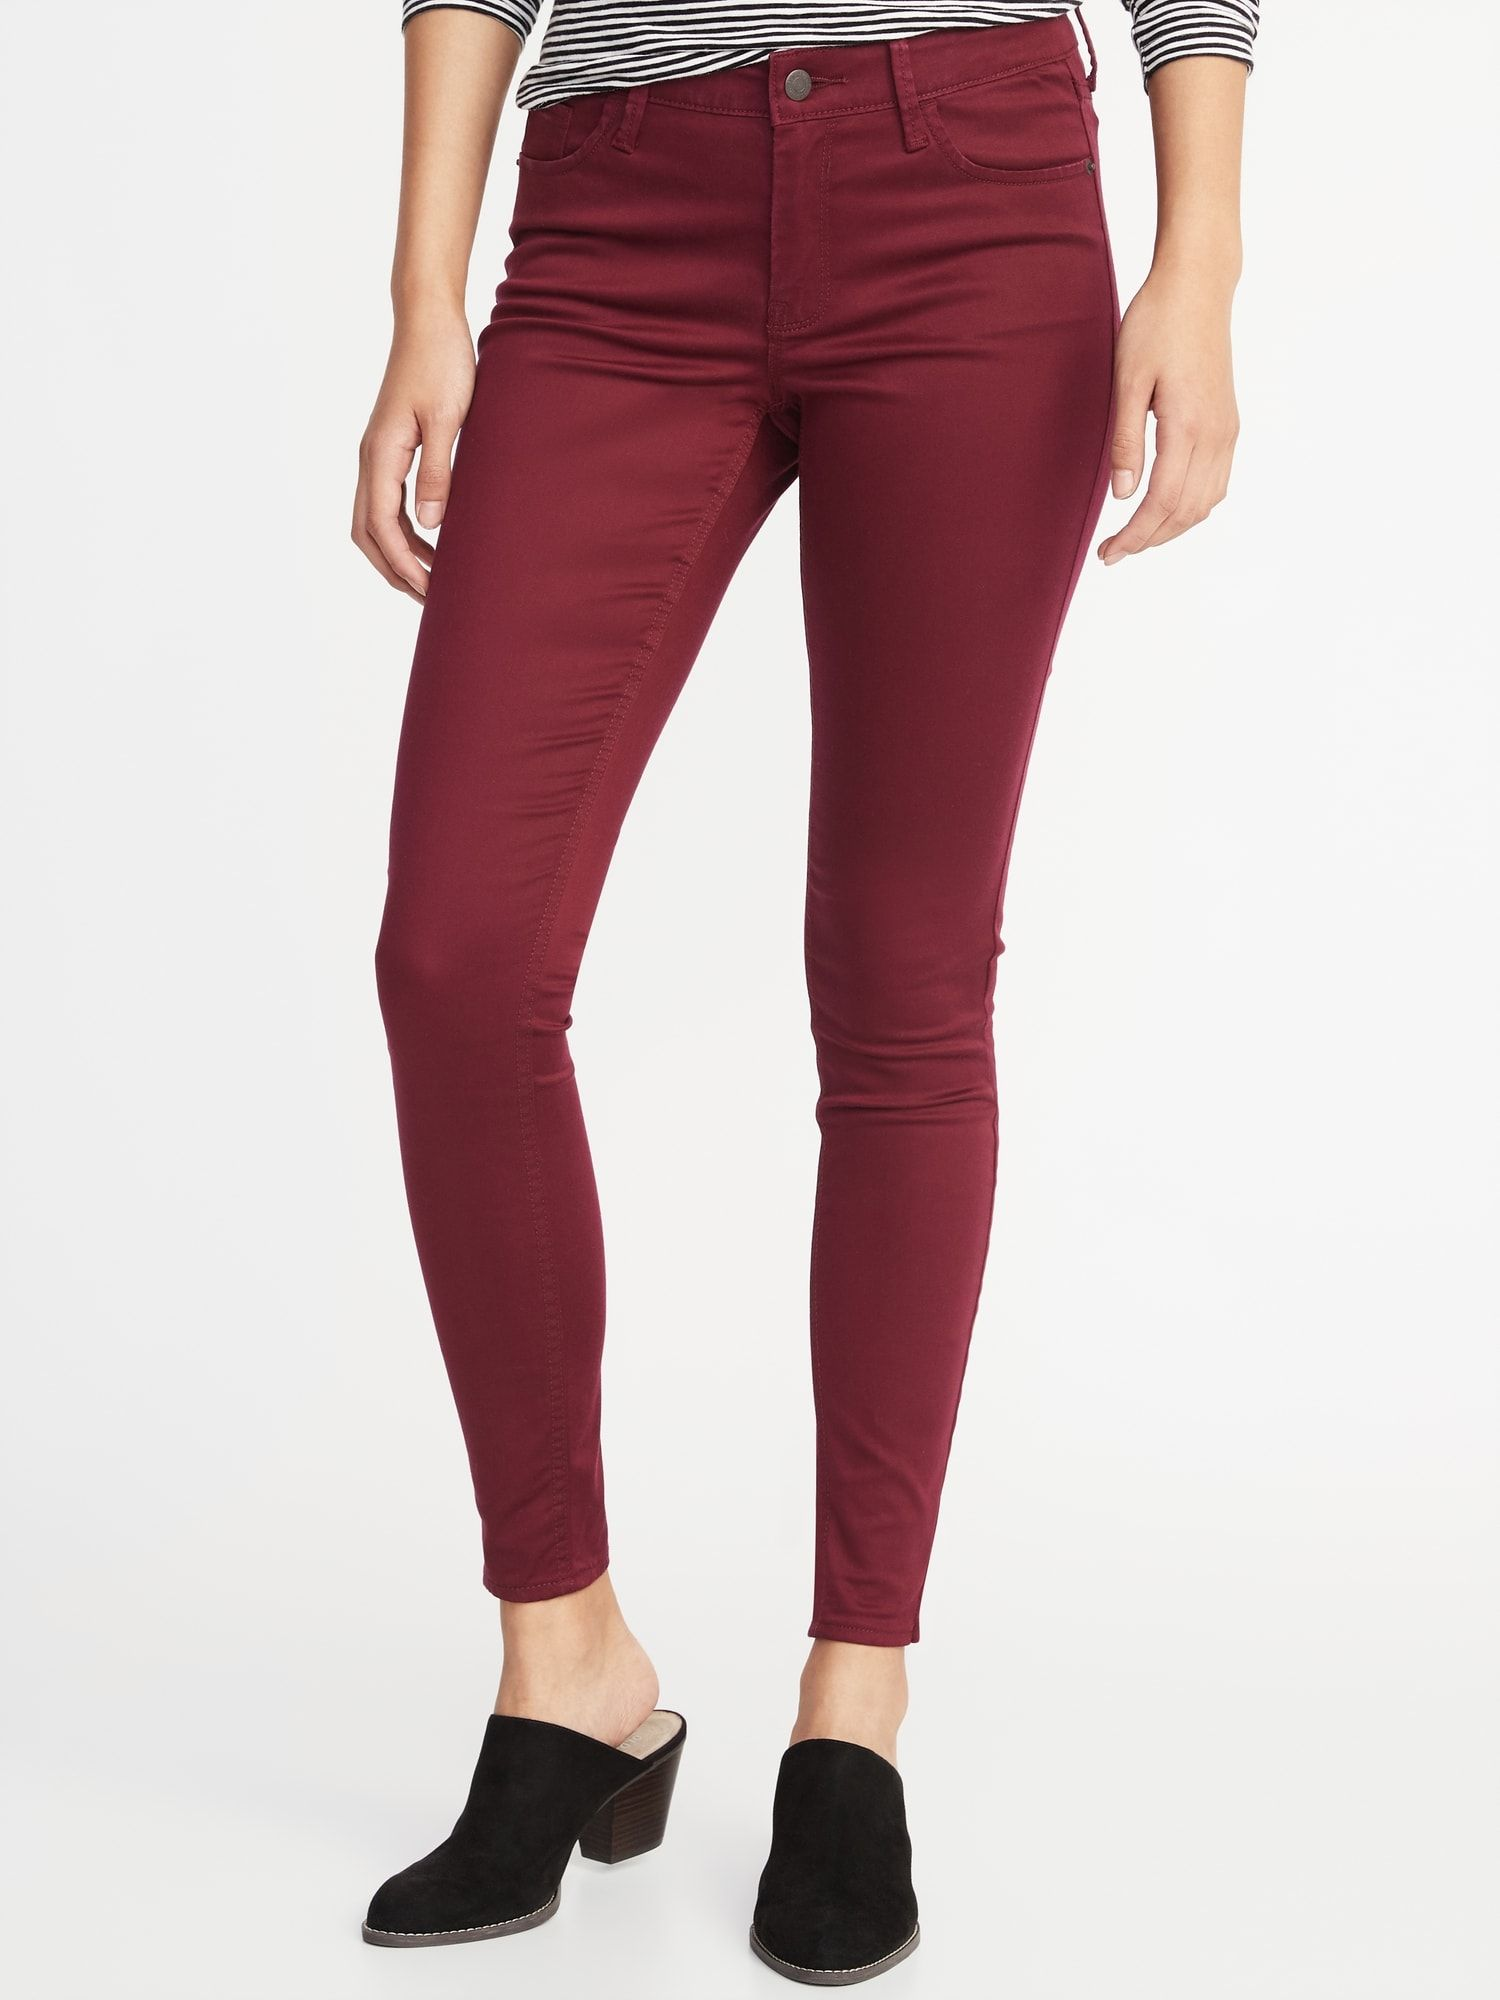 dbbc55dd88 Mid-Rise Sateen Rockstar Super Skinny Jeans for Women | want ...